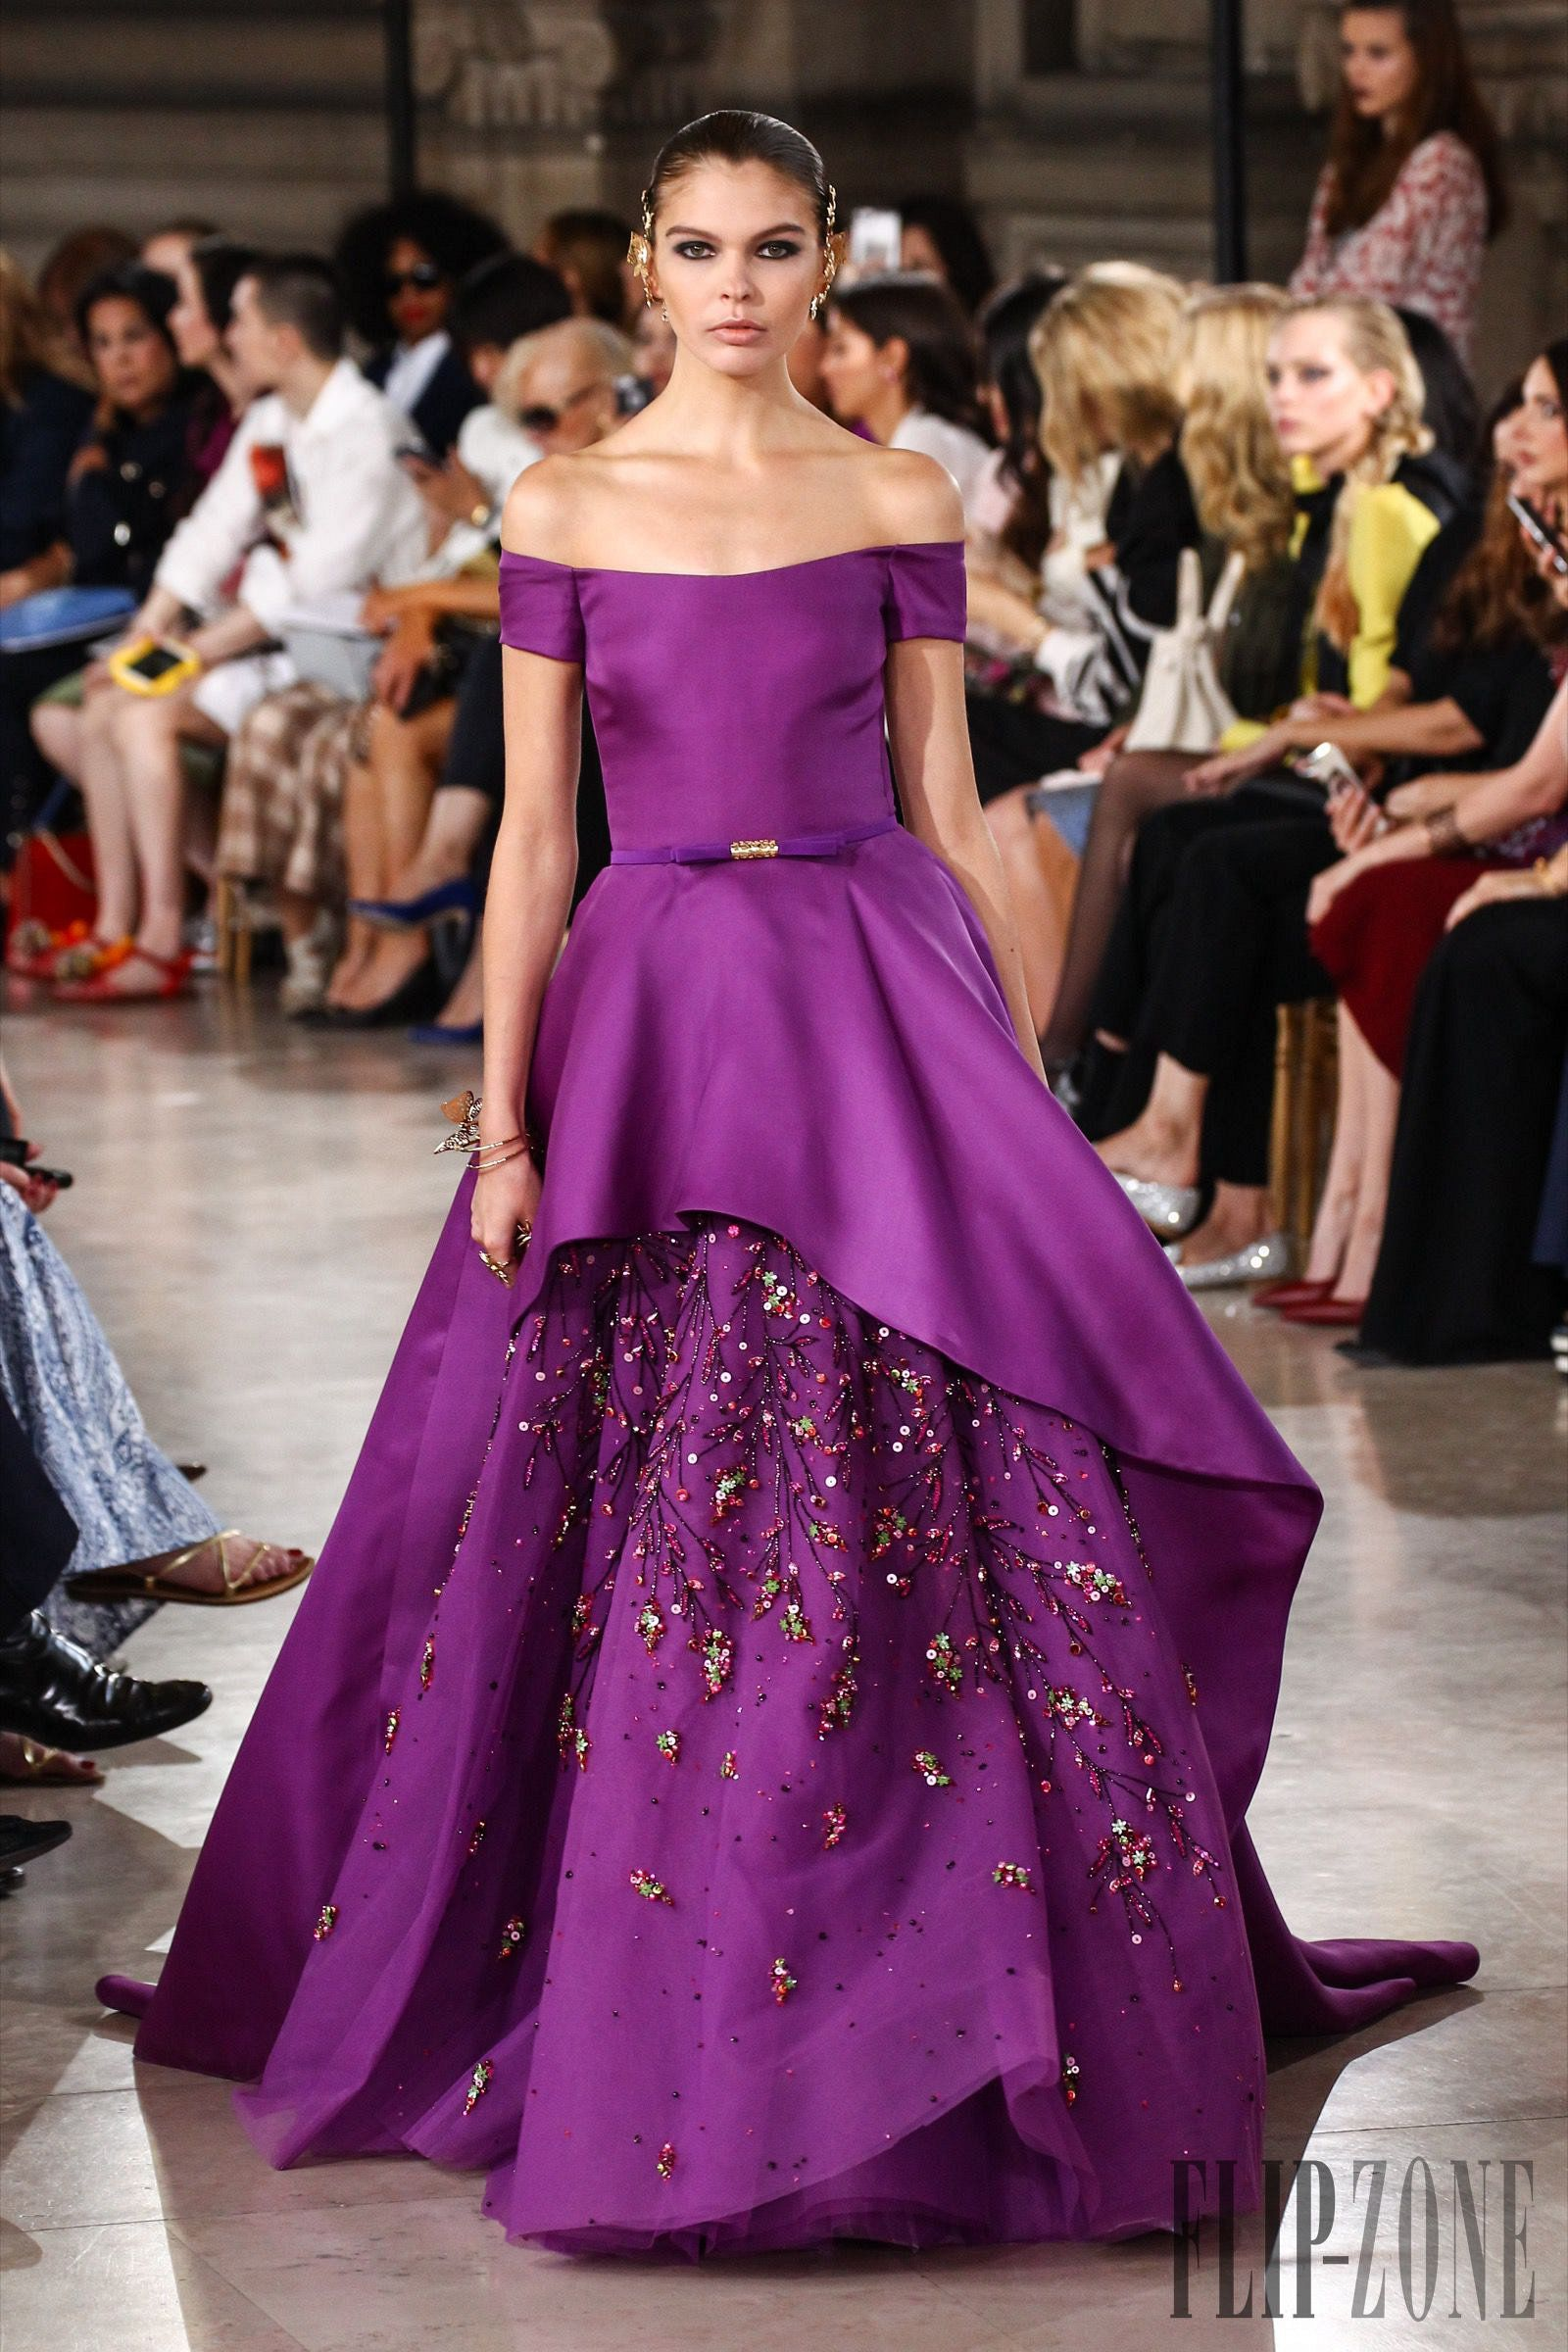 Georges Hobeika – 85 photos - the complete collection